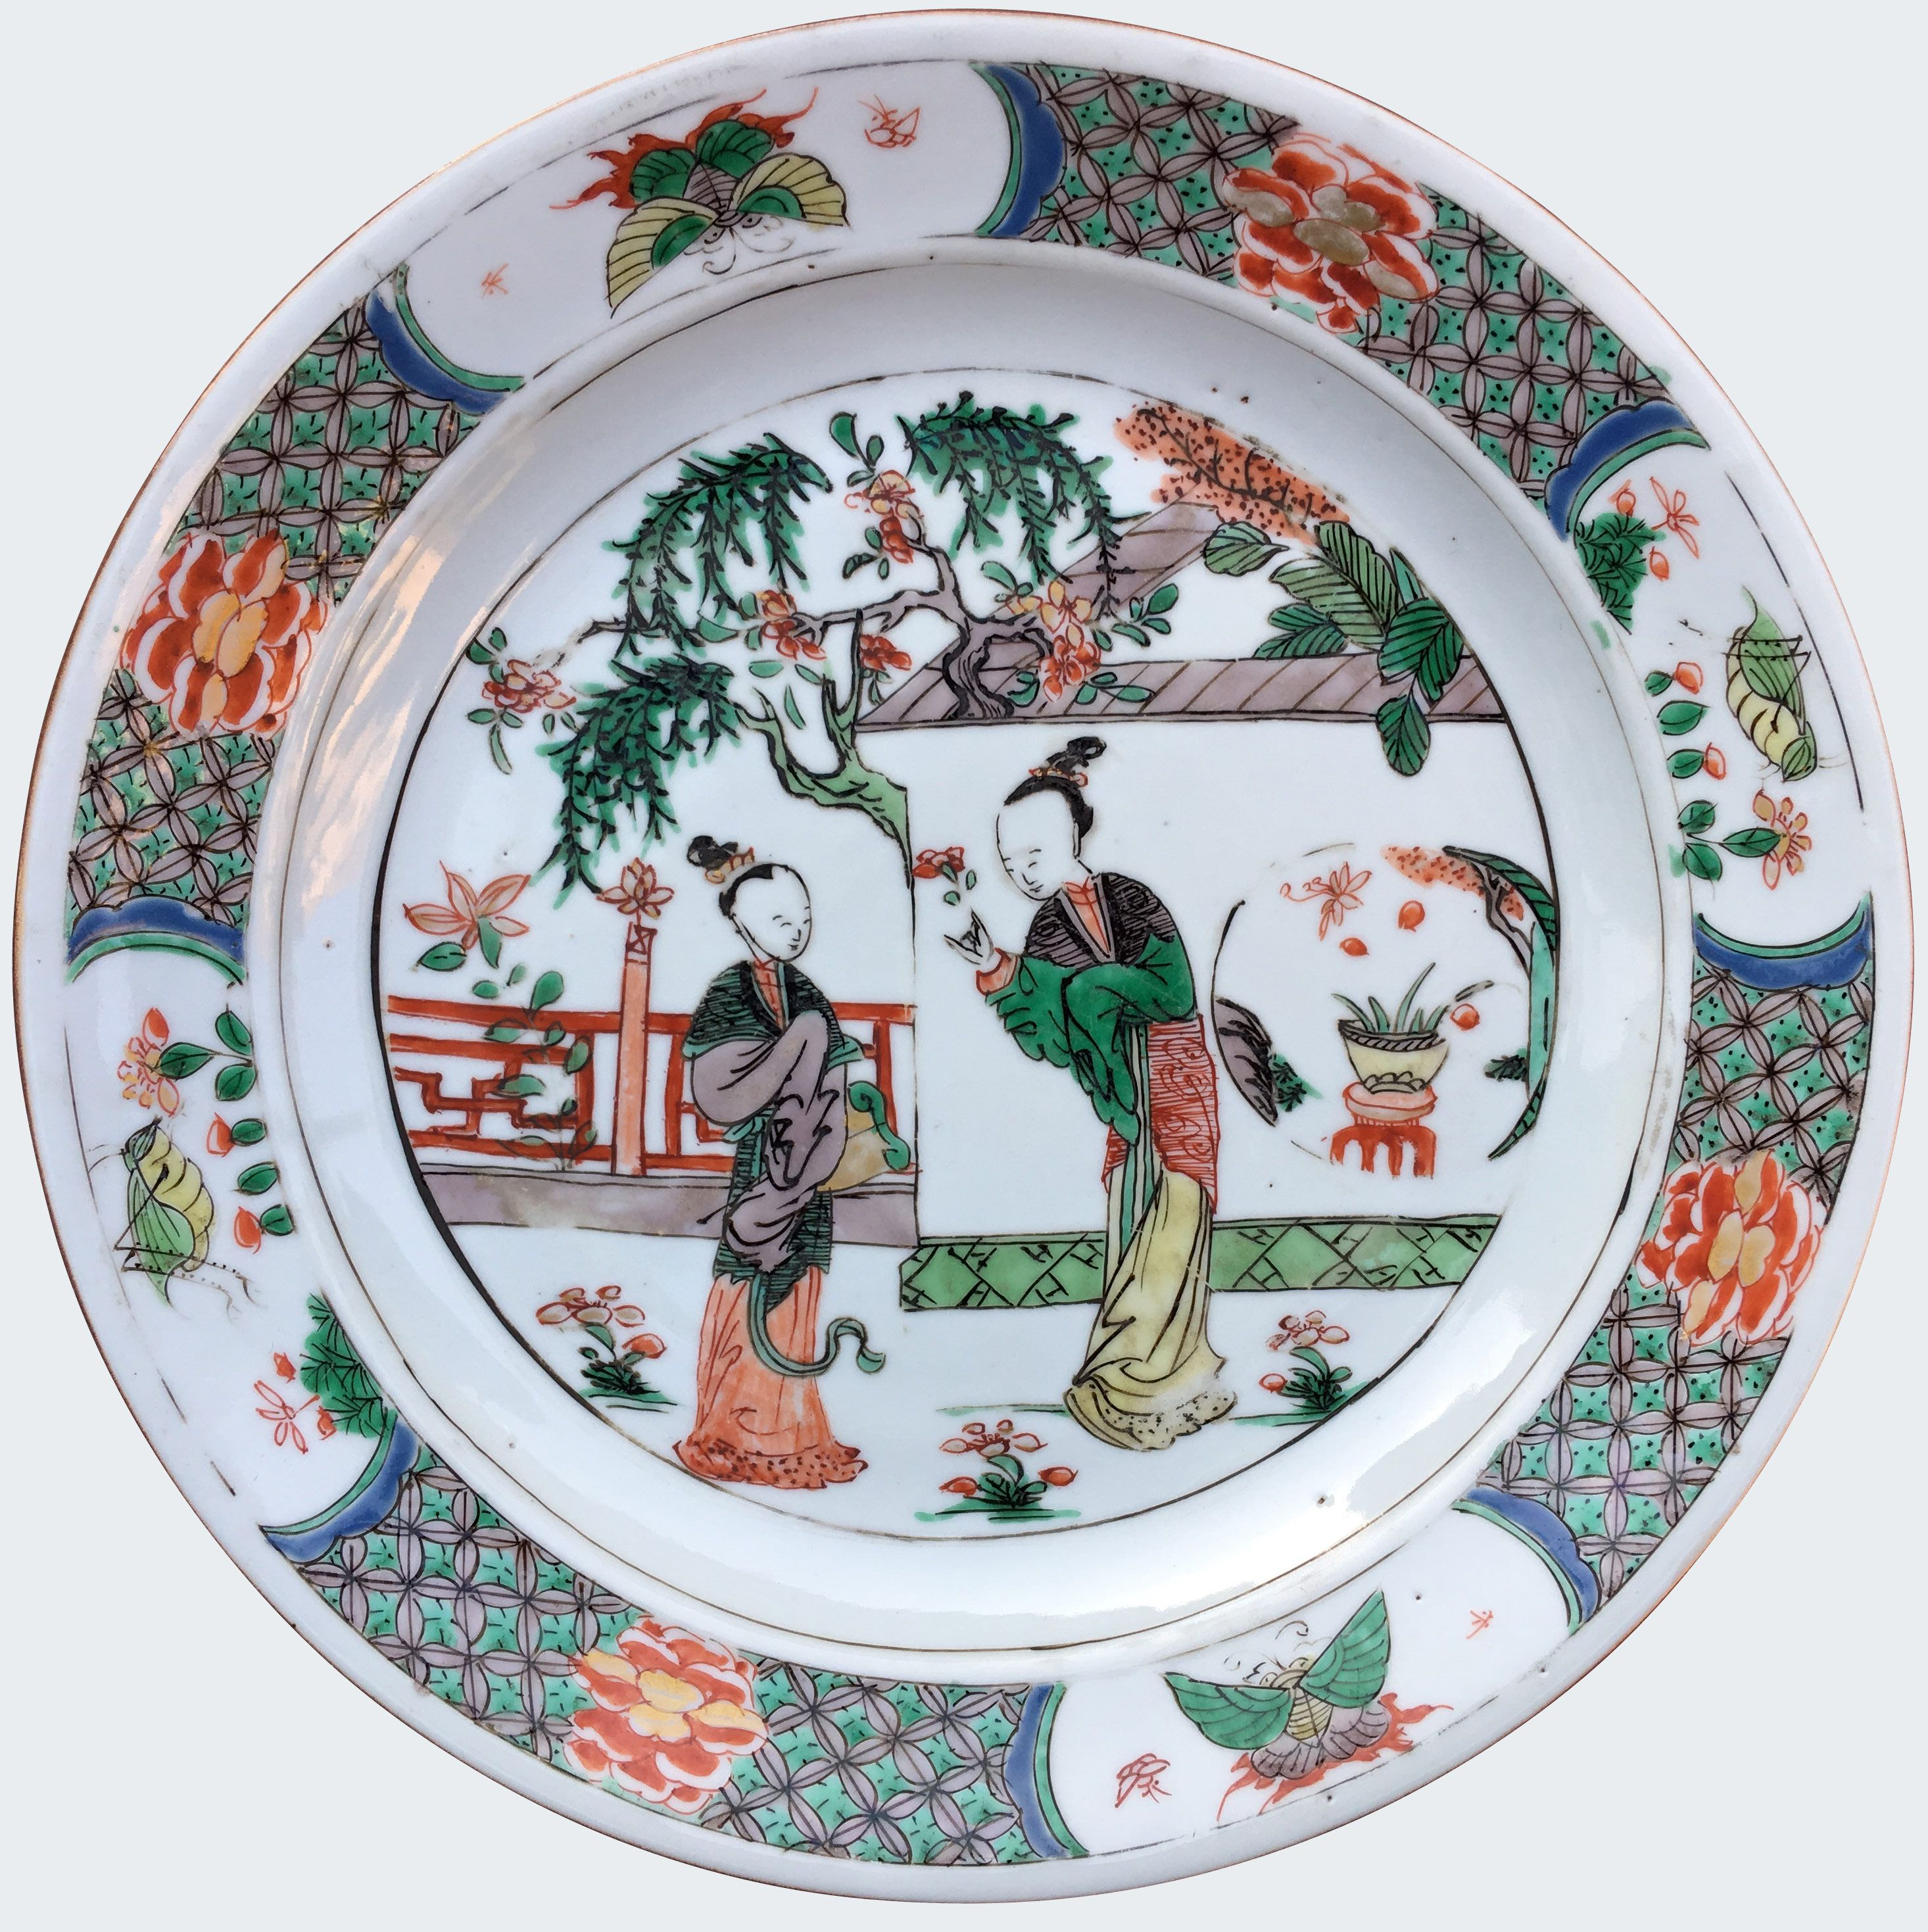 A Chinese export porcelain famille verte plate decorated with figures. Kangxi period. China/Asia. Decorated in the famille verte palette, with two ladies in a fenced garden outside a walled enclosure